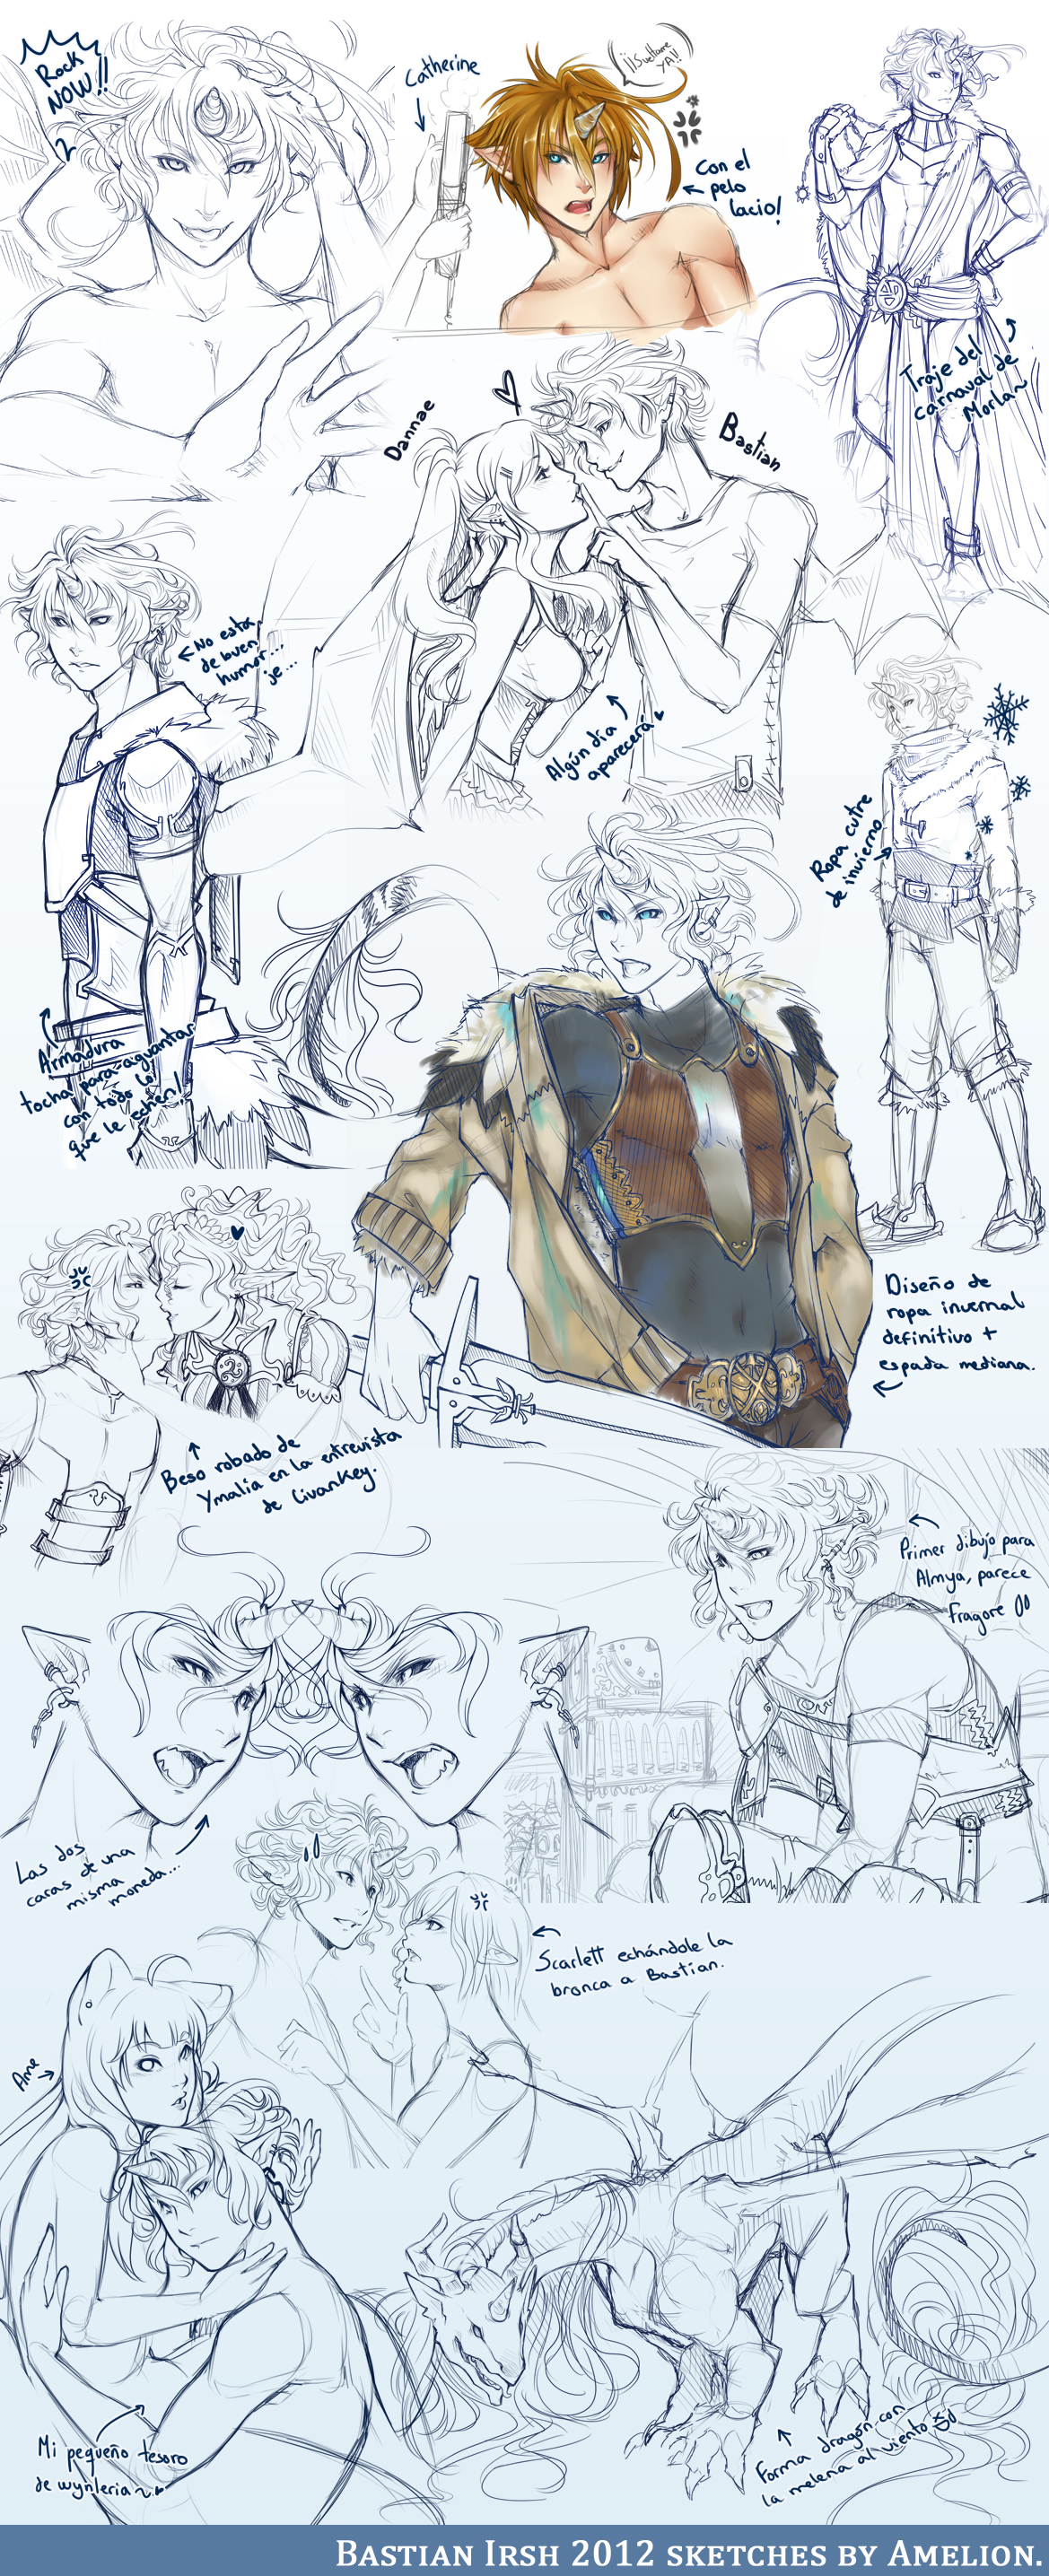 . Bastian Irsh 2012 sketches . by Amelion